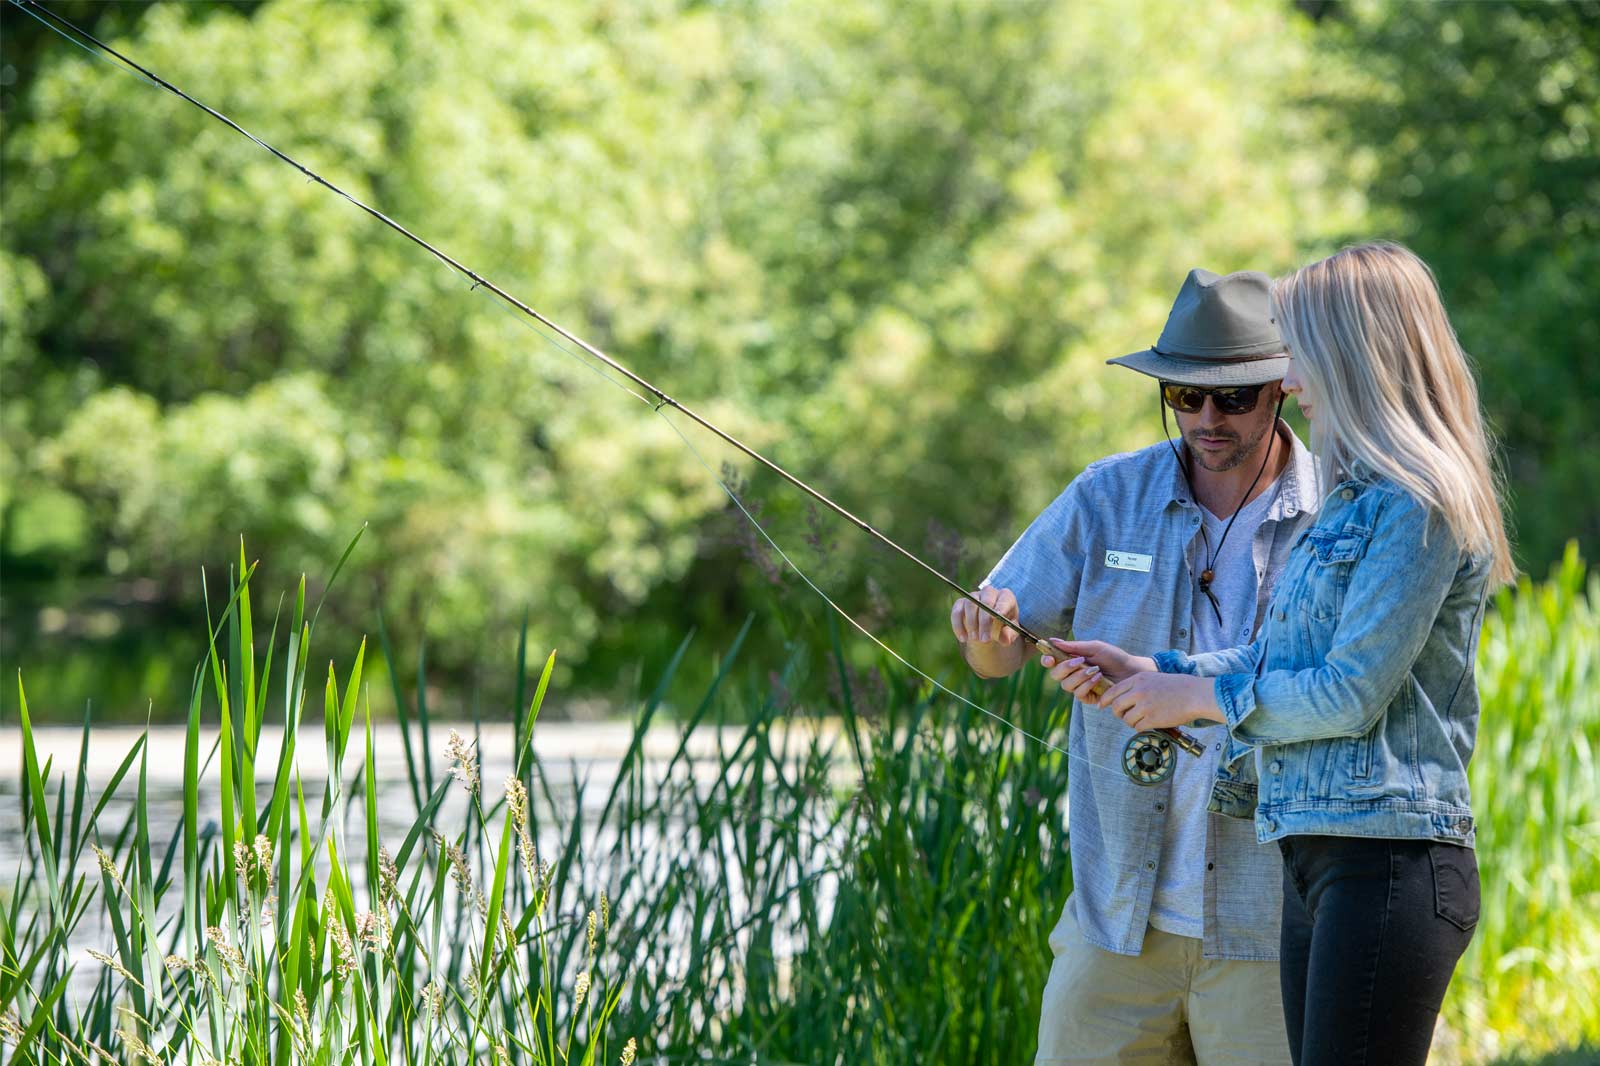 A fly fishing lesson at the pond, a blond woman receives instruction from a Greenhorn team member